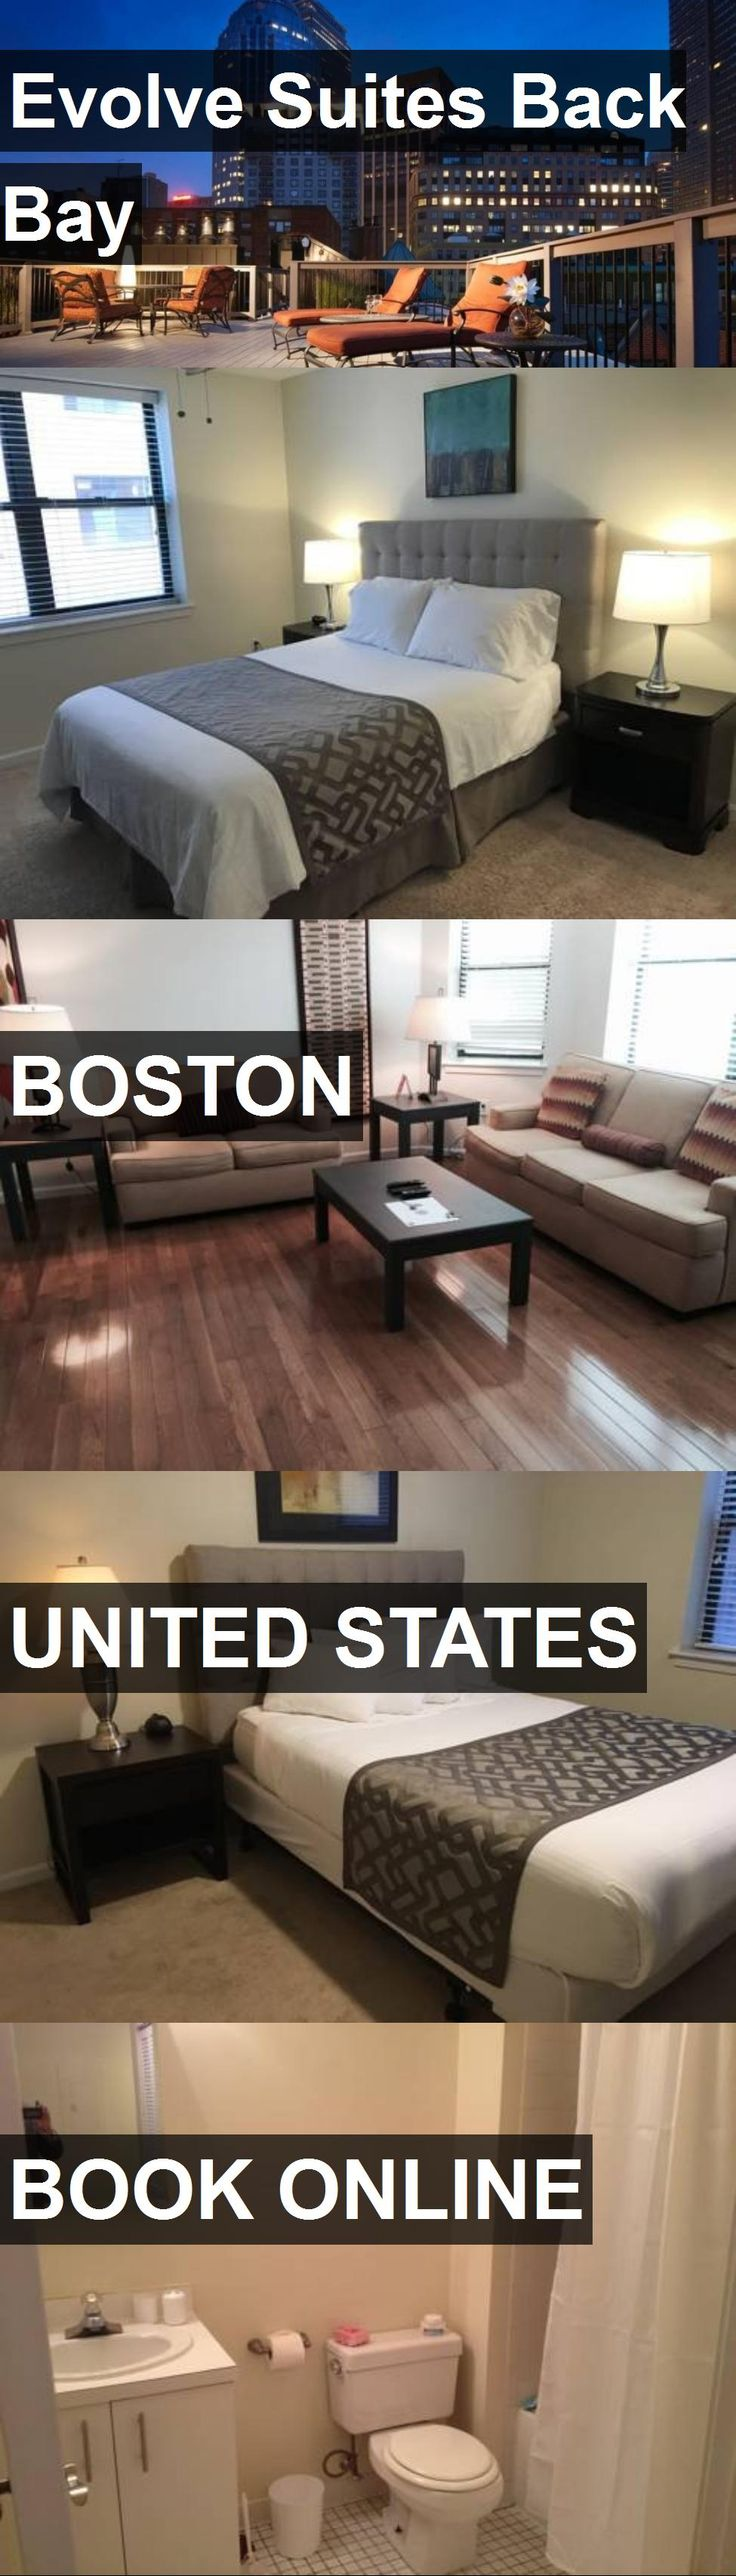 Hotel Evolve Suites Back Bay in Boston, United States. For more information, photos, reviews and best prices please follow the link. #UnitedStates #Boston #EvolveSuitesBackBay #hotel #travel #vacation